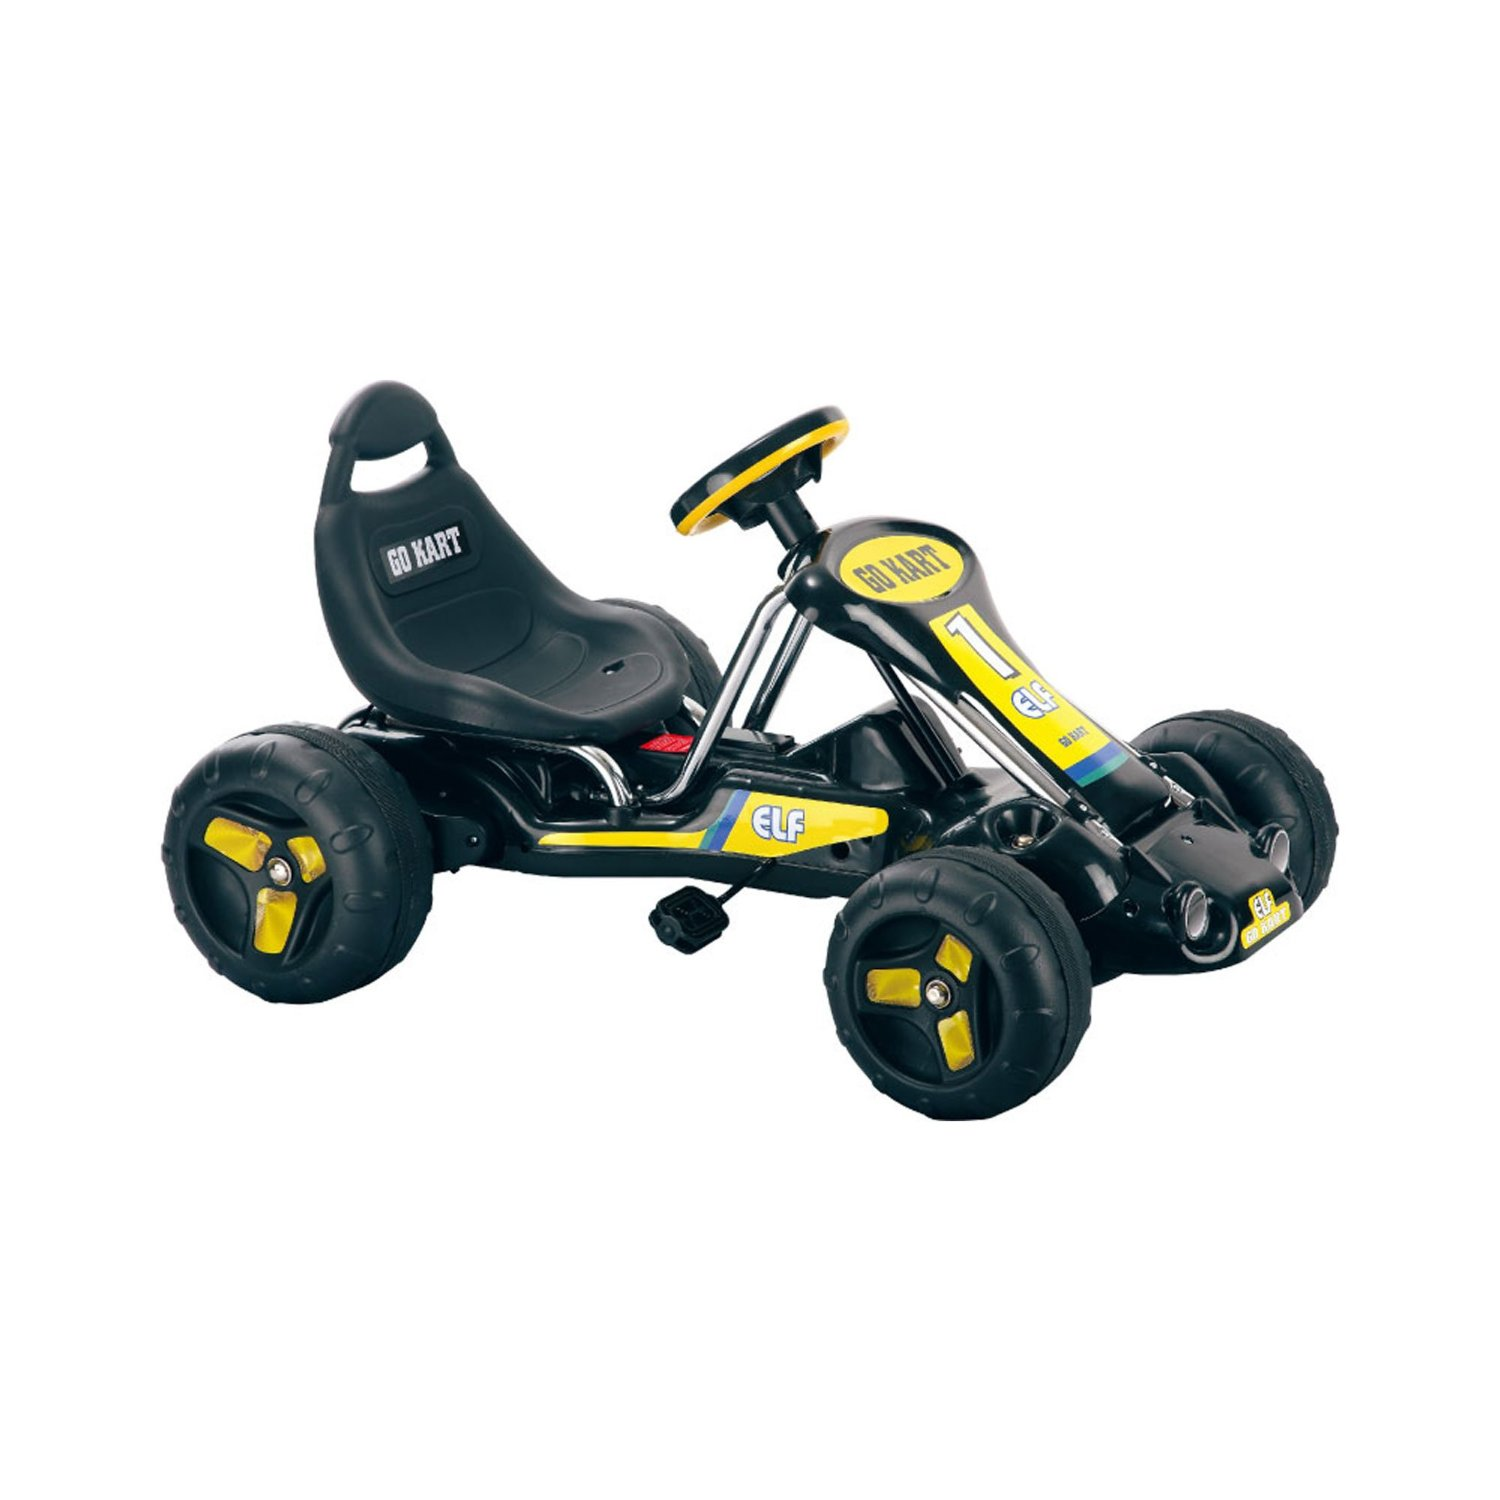 Lil Rider Black Stealth Pedal Powered Go-Kart